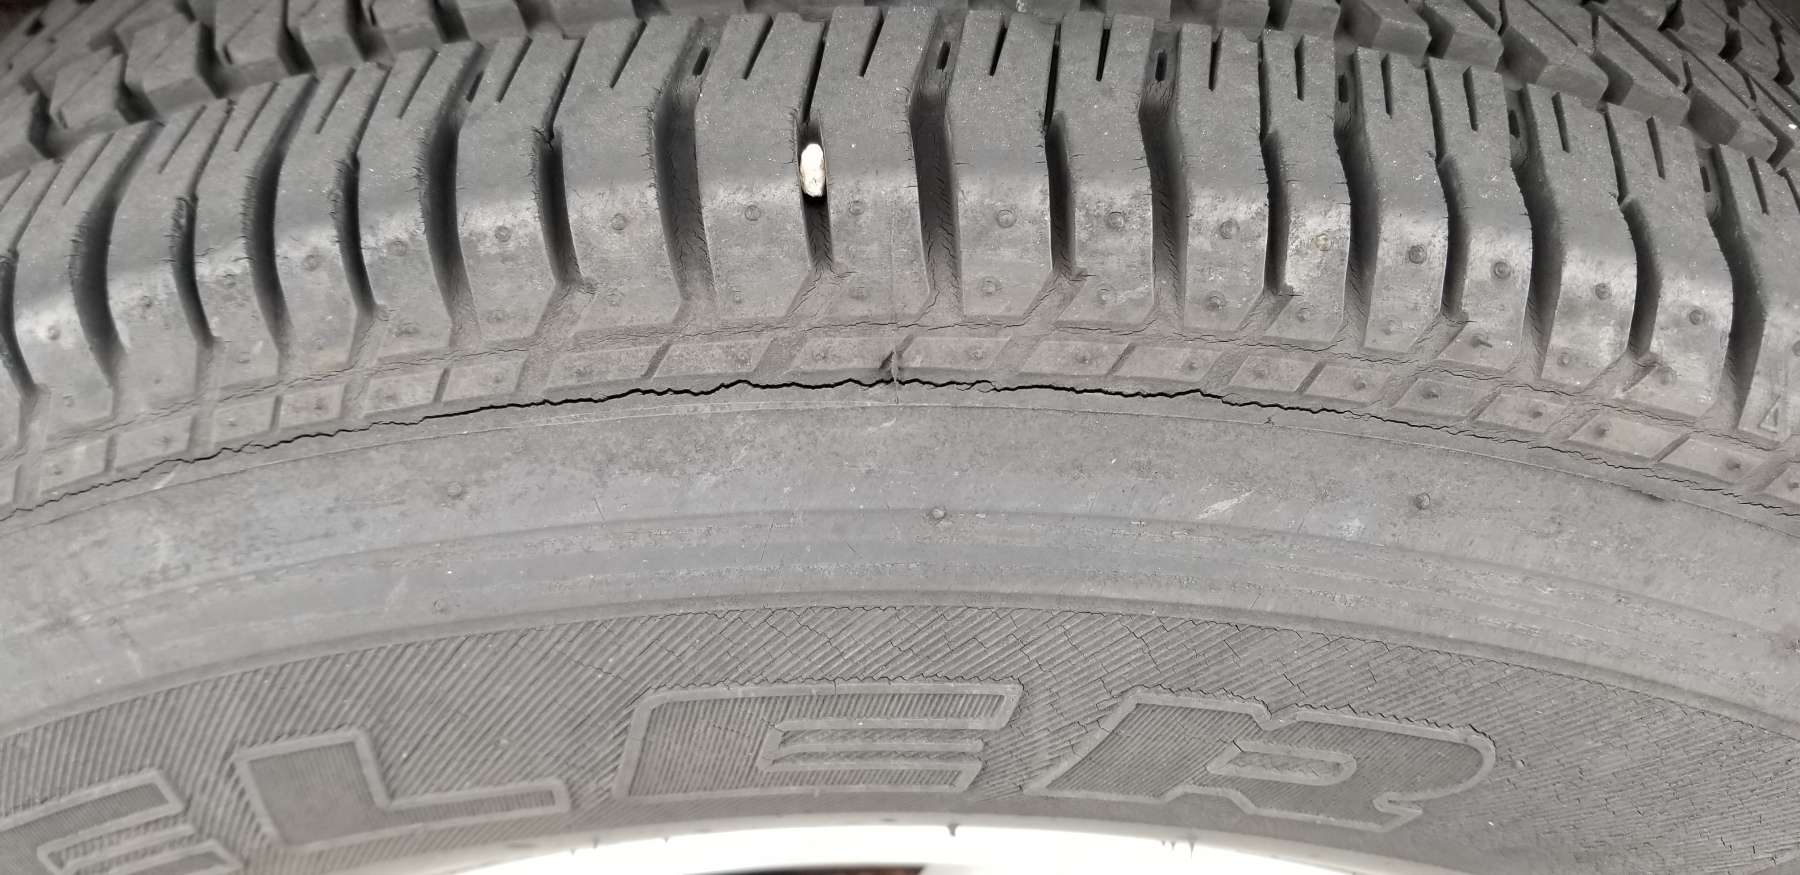 Bridgestone Severe Shoulder Tire Cracking